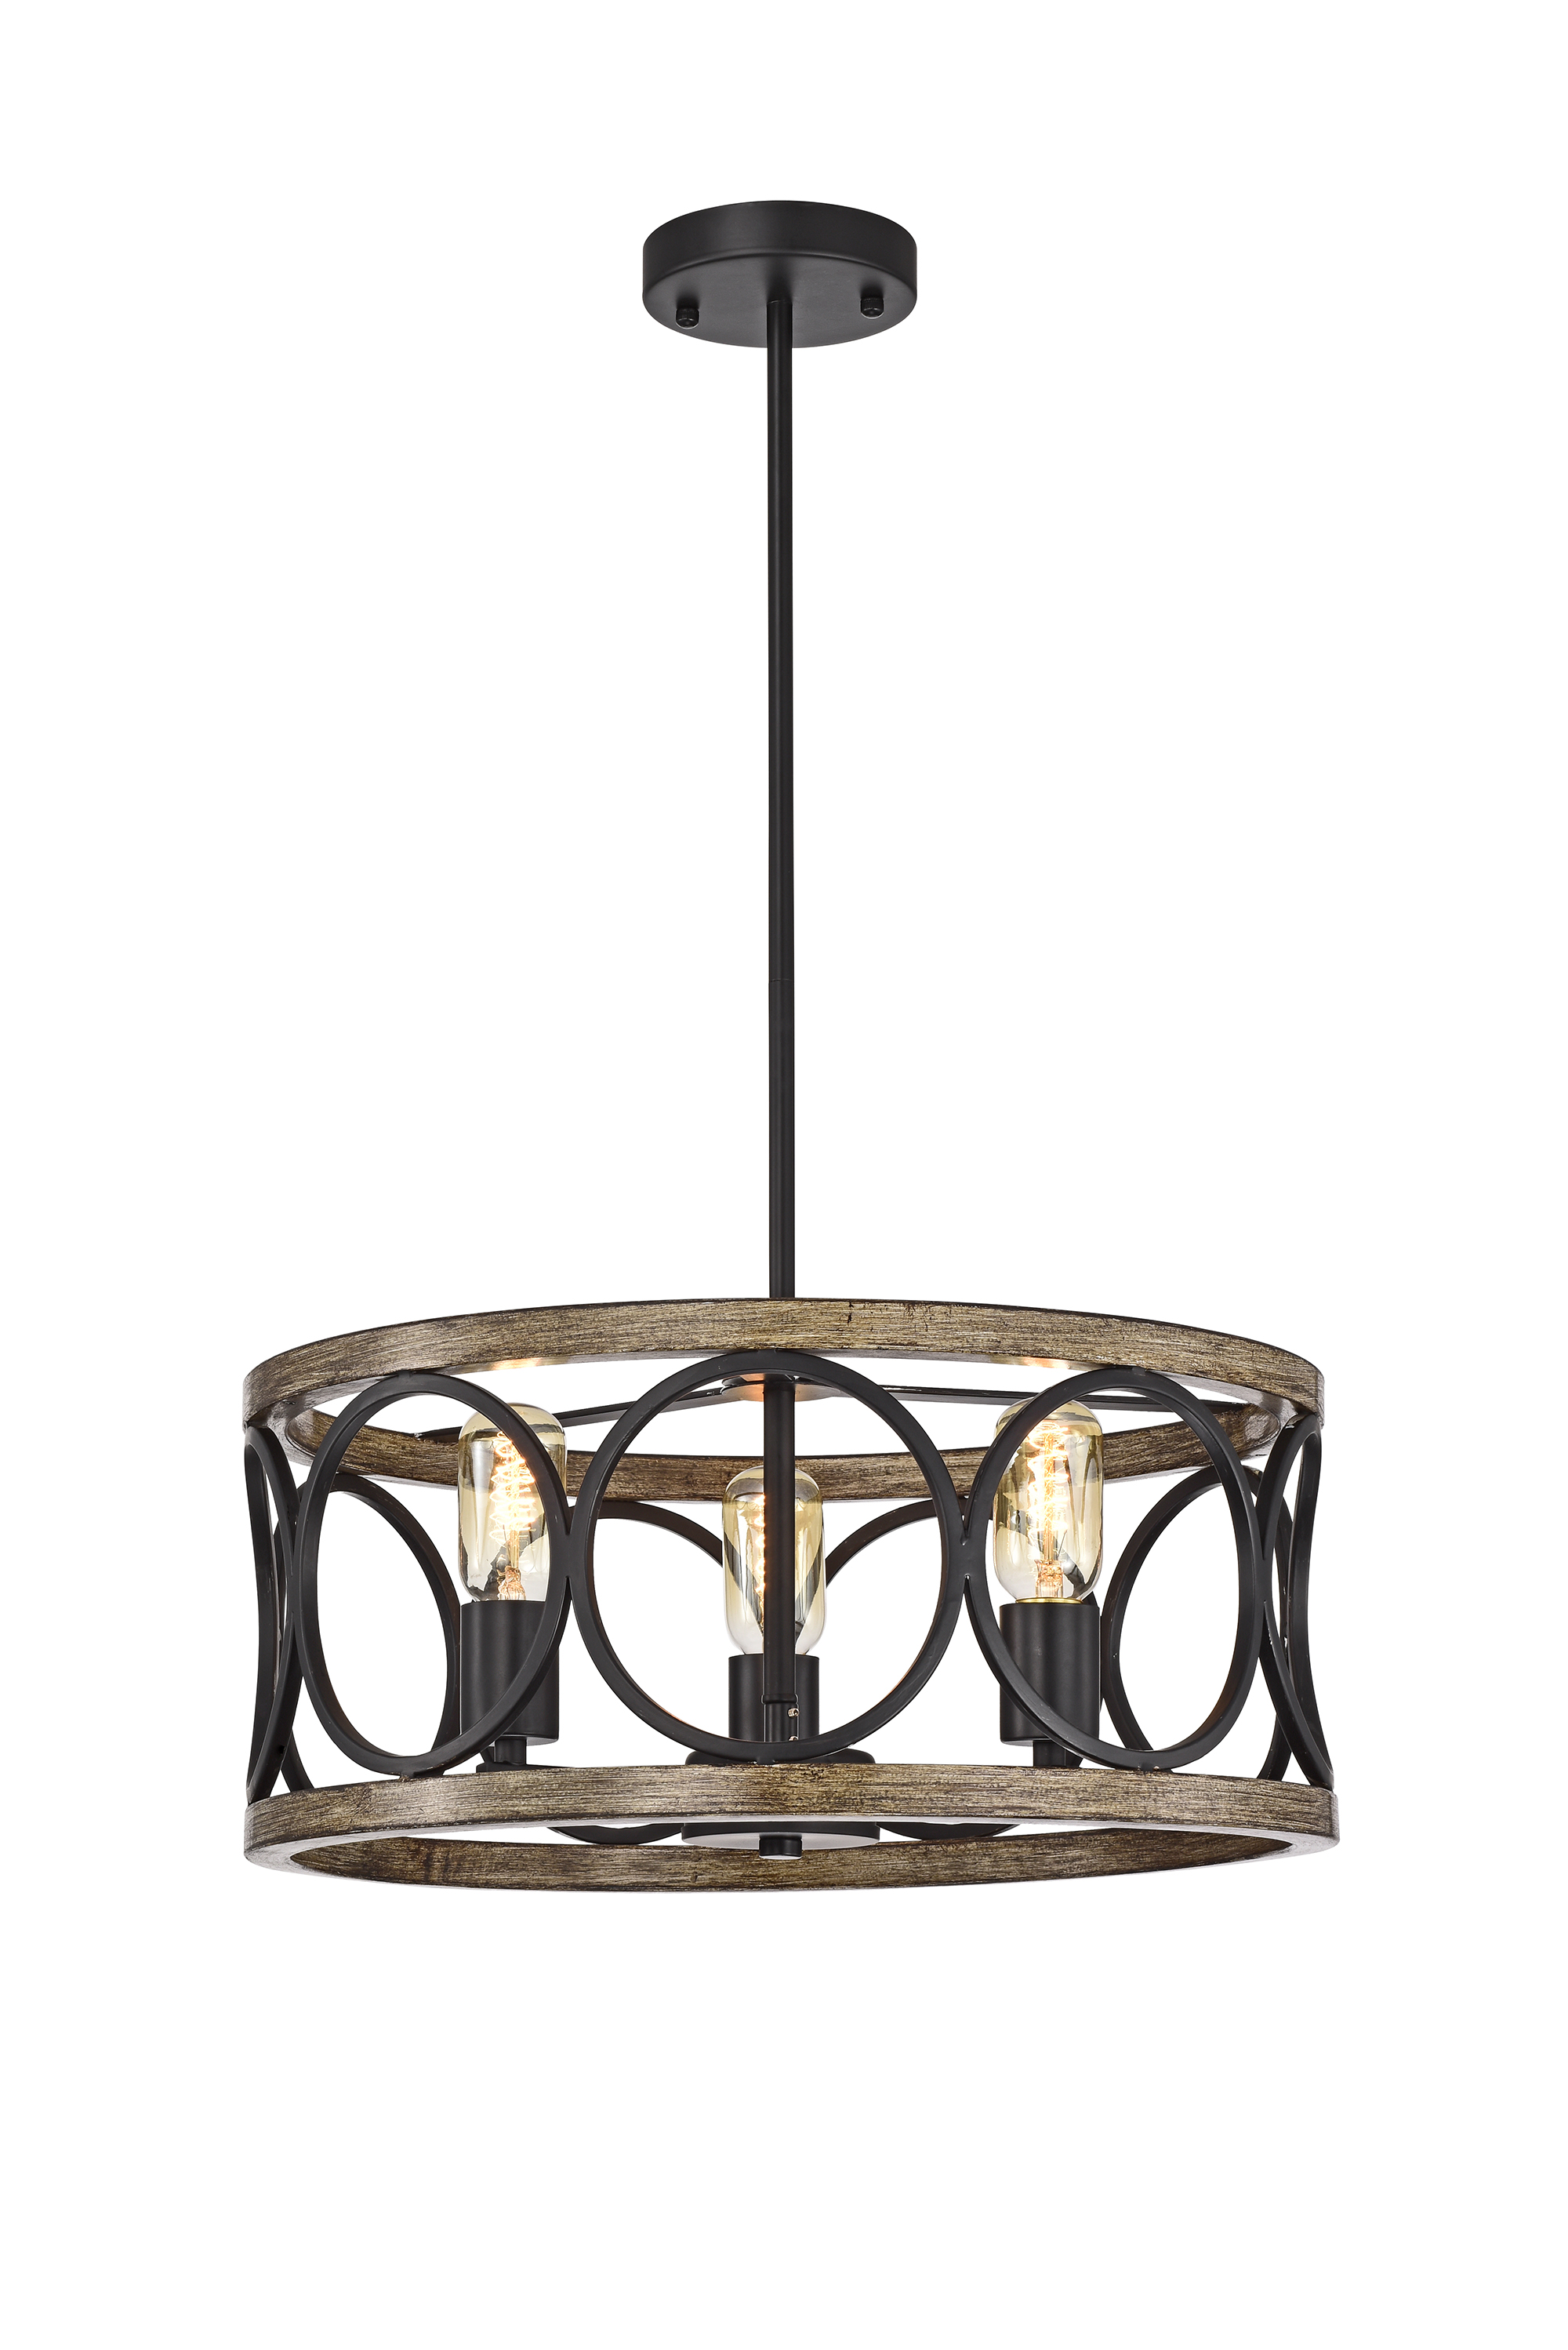 Lassy Matte Black 3-Light Drum Cage Chandelier with Open Metal Hoops Shade